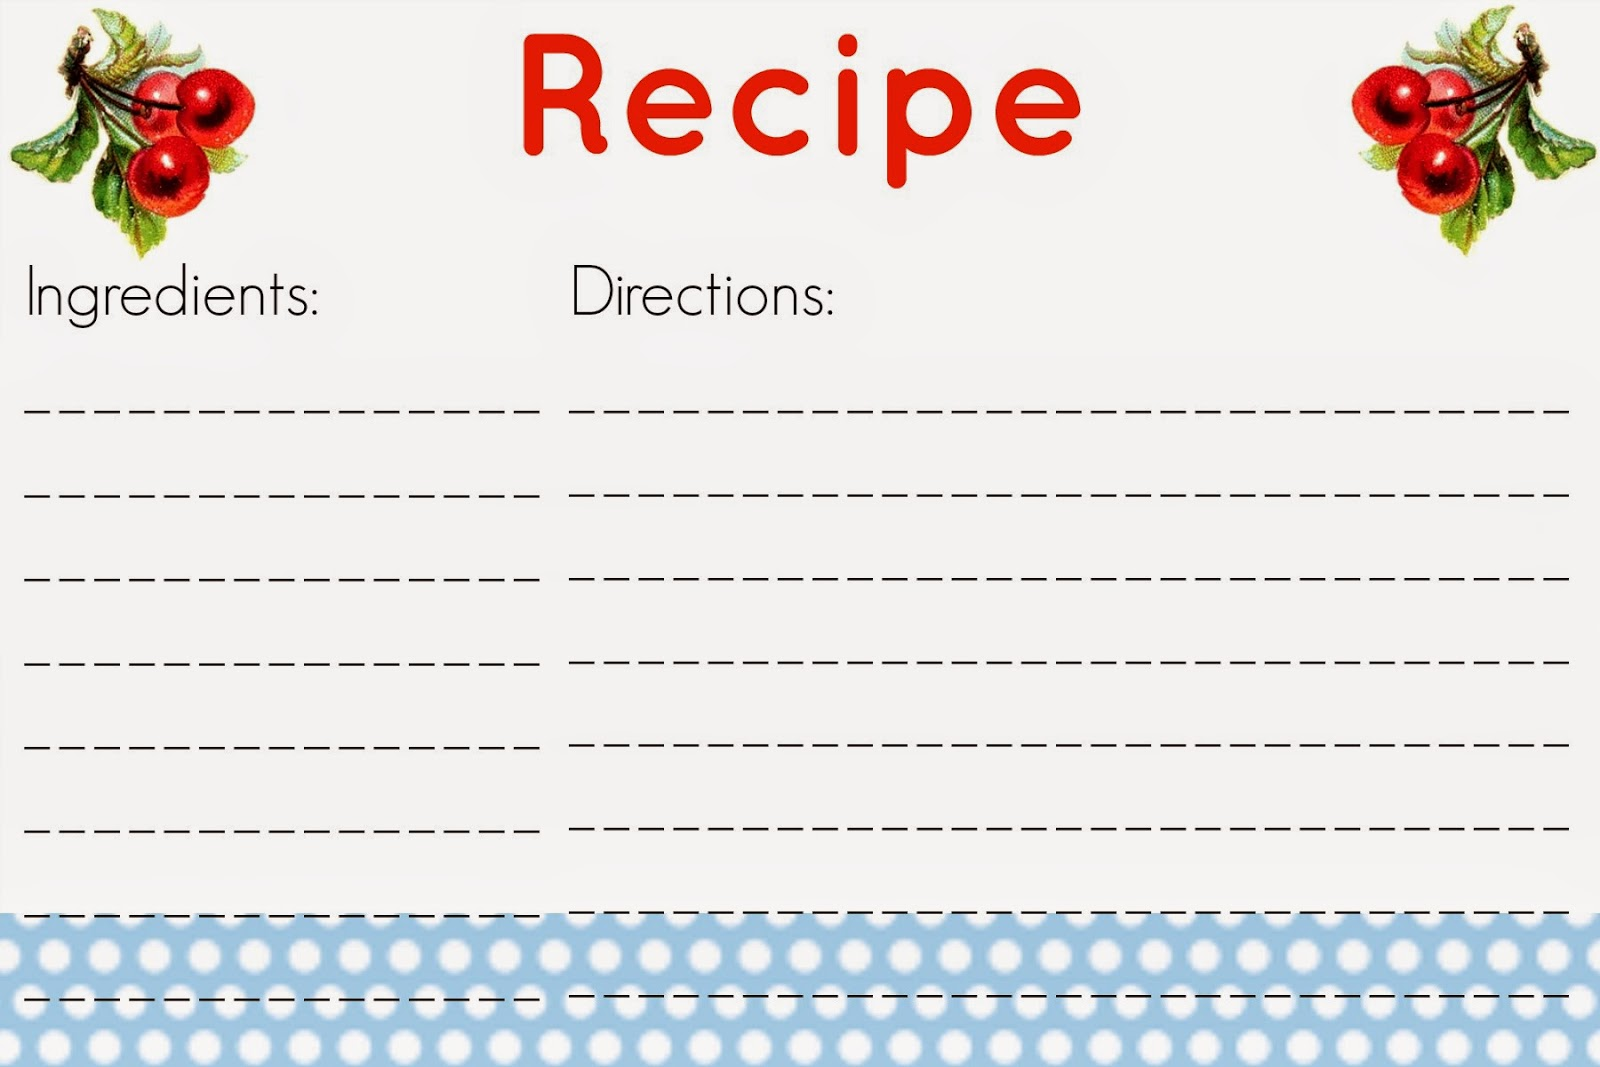 Printable 5x7 Recipe Cards Free printable recipe cards!